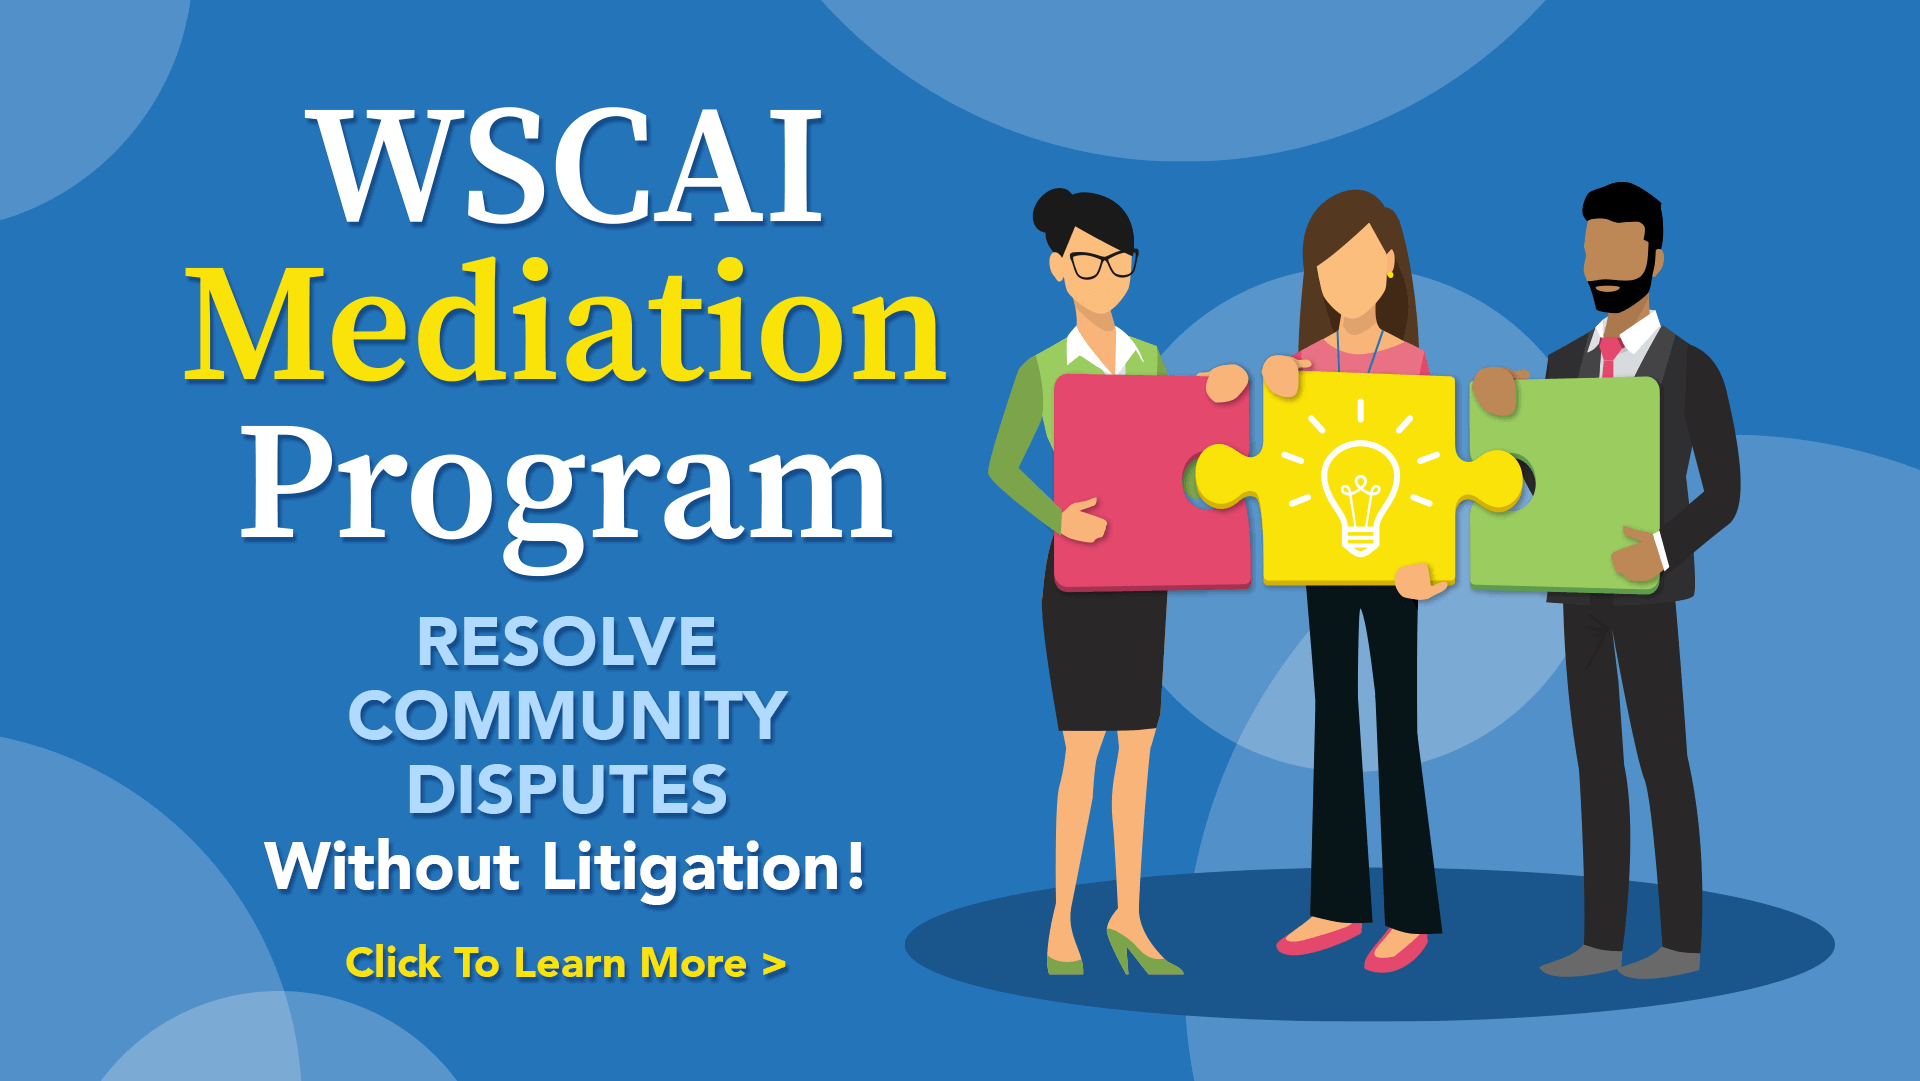 WSCAI Mediation Program - Resolve Community Disputes Without Litigation - Click here to Learn More